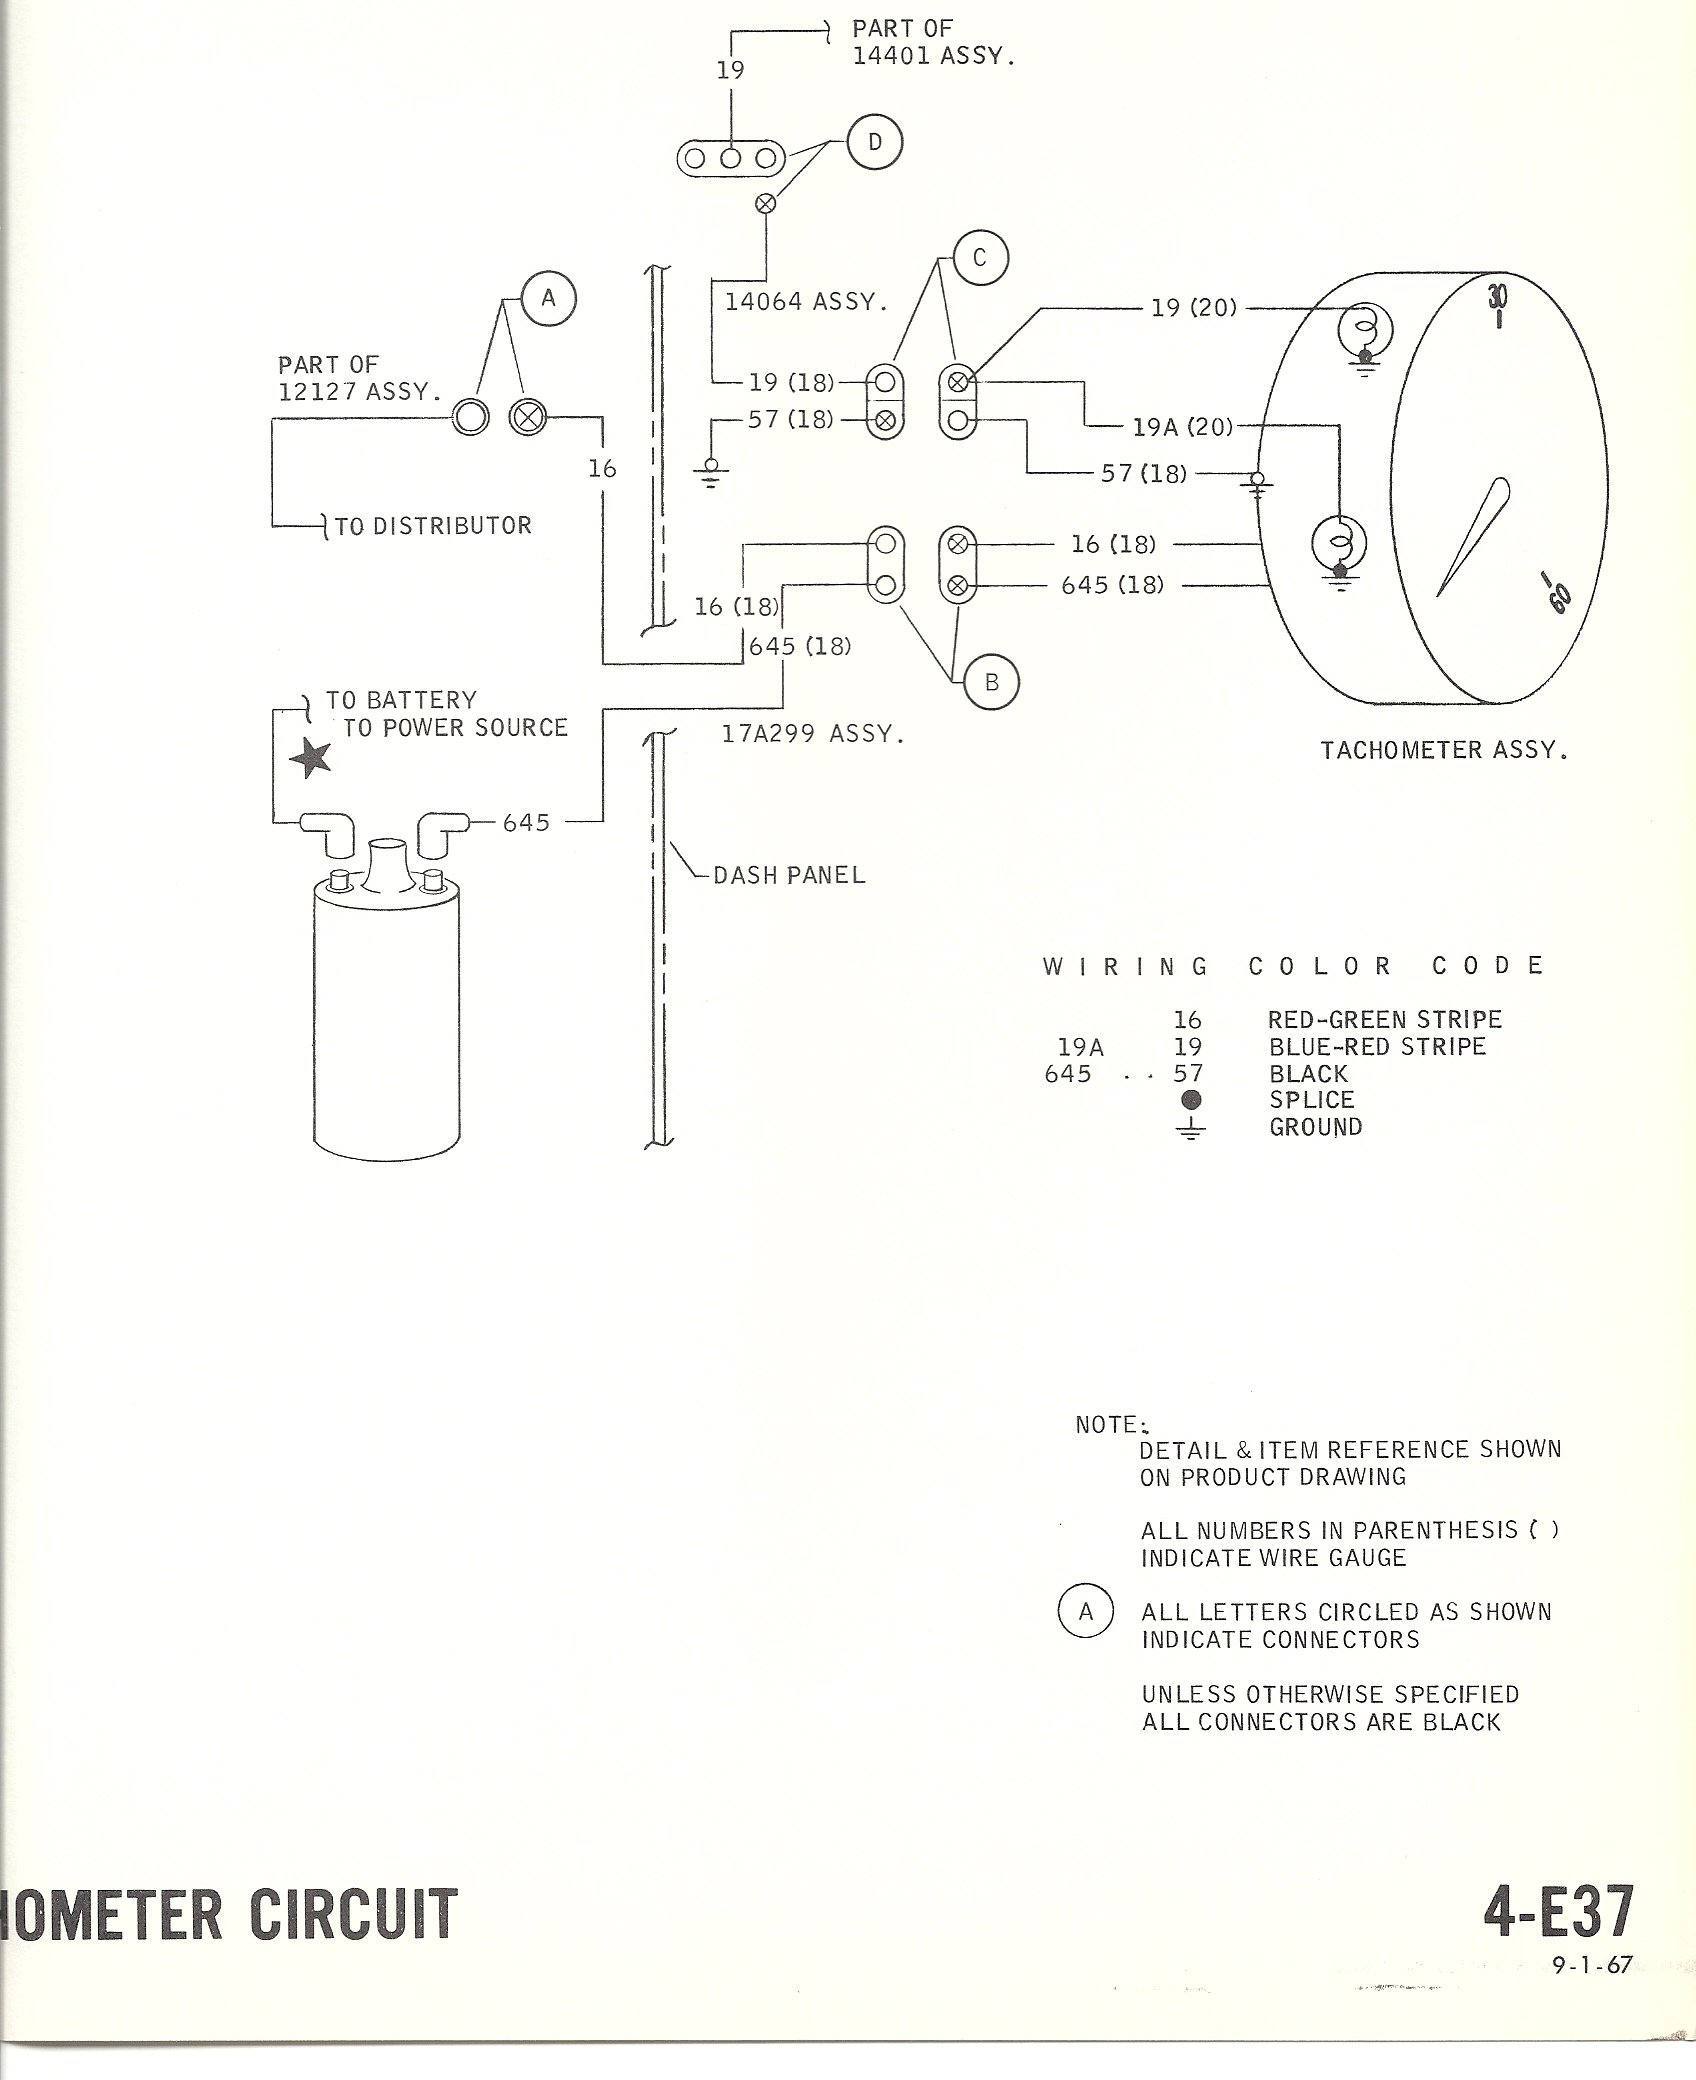 1968 Triumph Tr250 Wiring Diagram | Wiring Diagram on 1968 triumph gt6 wiring diagram, 1970 vw bug wiring diagram, 1968 triumph spitfire wiring diagram, 2000 mercury marquis wiring diagram, 1969 mgb wiring diagram,